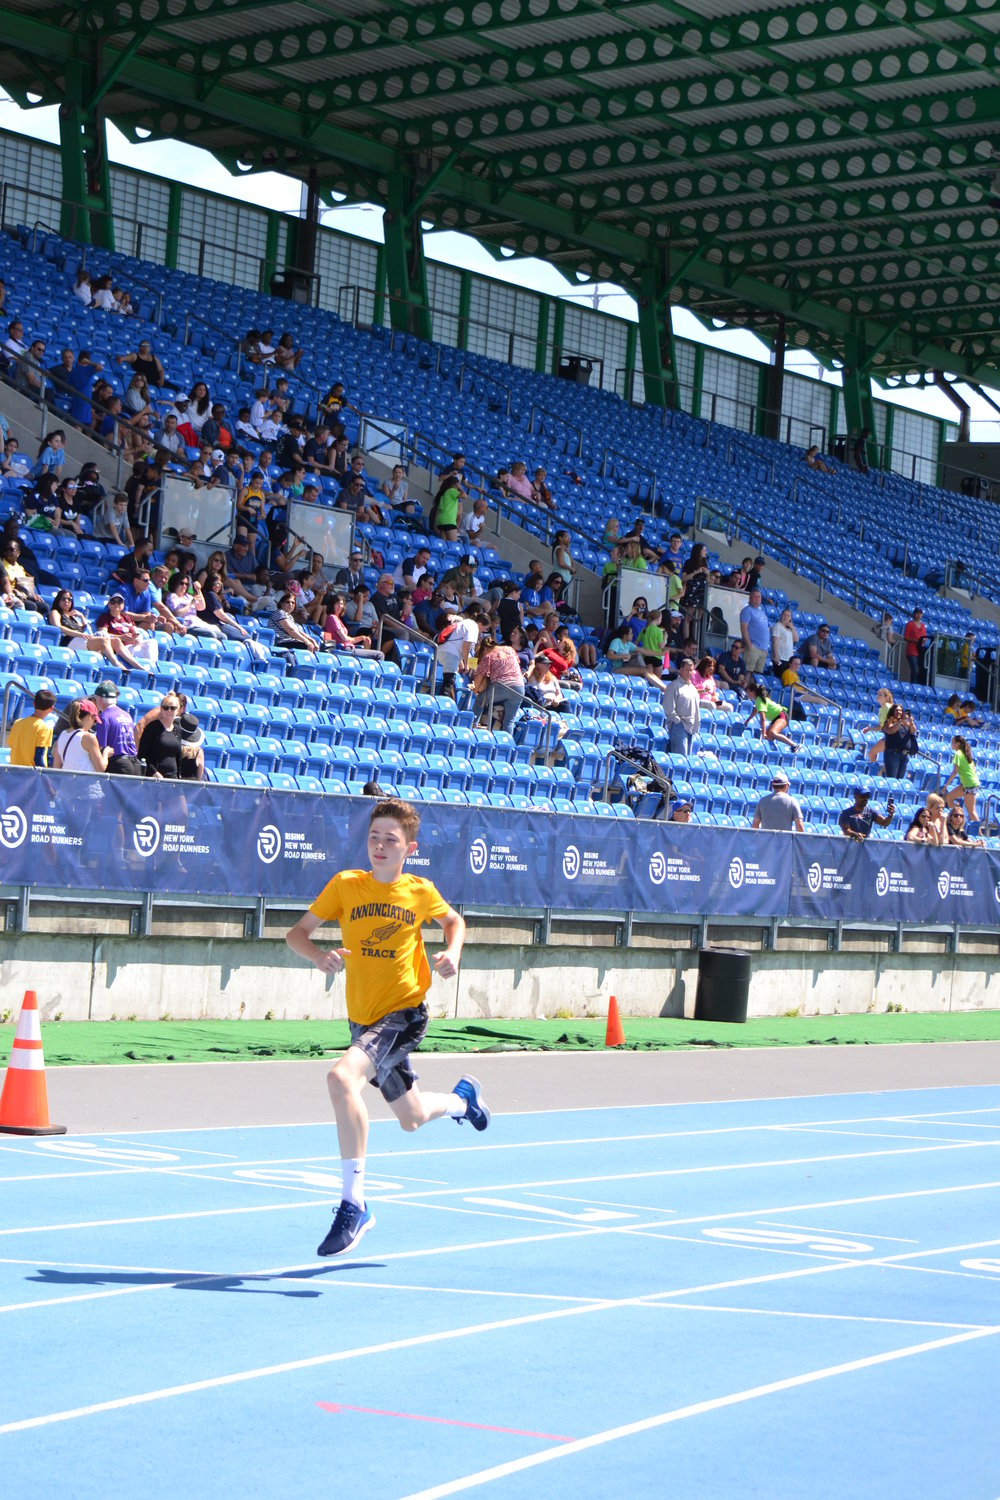 Davey Davitt of Annunciation, Crestwood, above, won two races at the CYO Track and Field Championships at Icahn Stadium in Manhattan June 9.